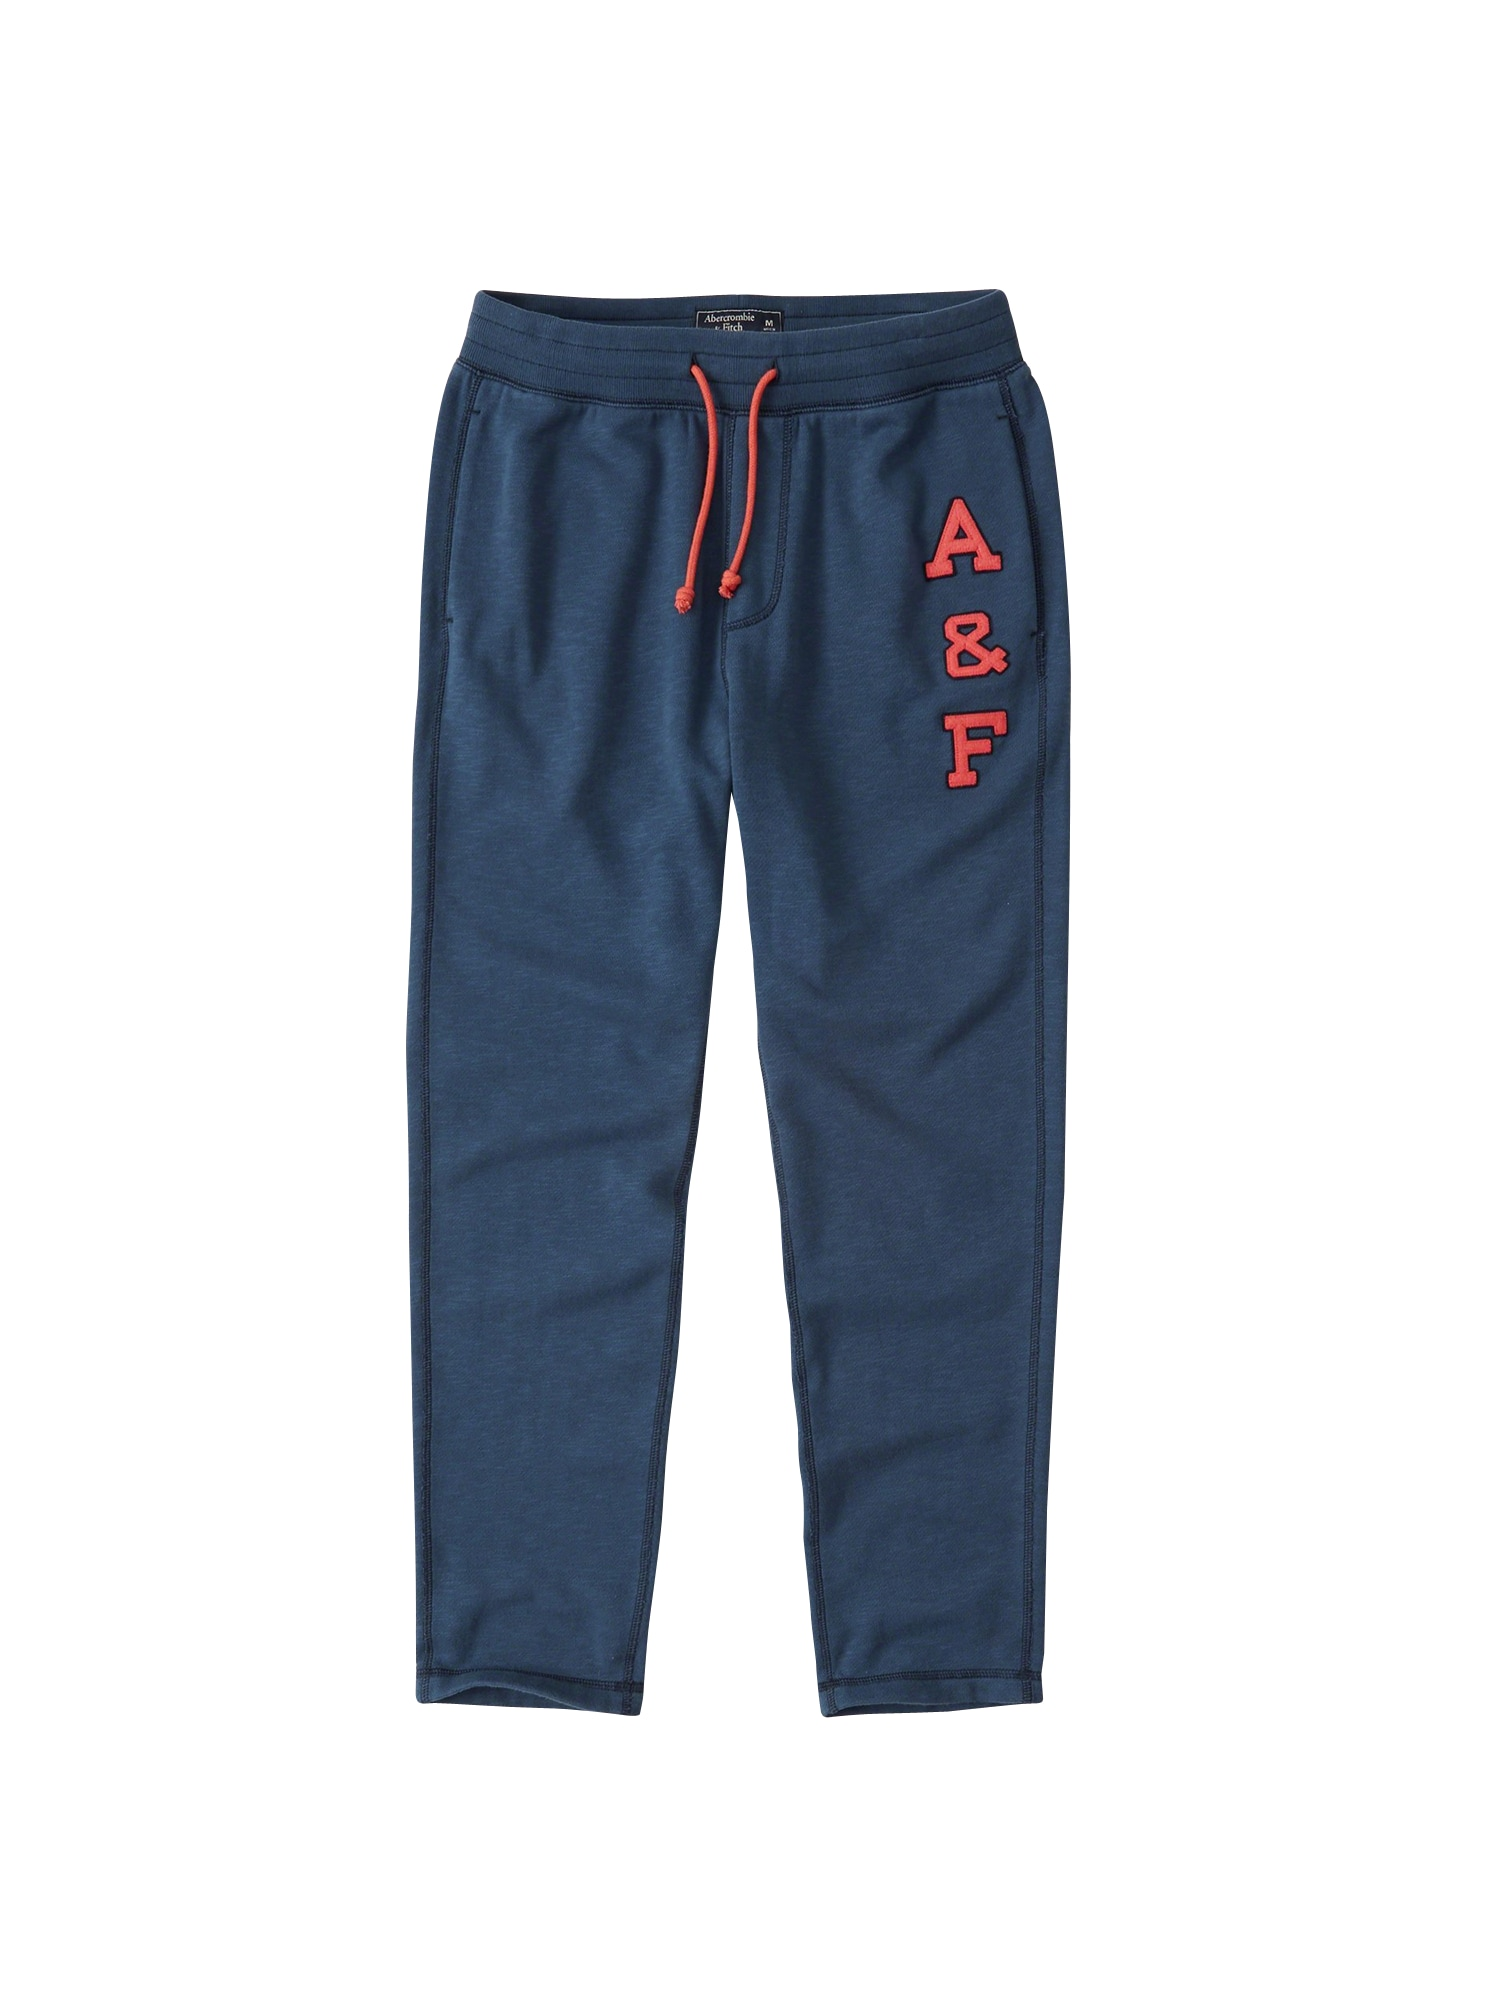 Abercrombie & Fitch, Heren Broek 'FOREVER LOGO CLASSIC PANT DUAL 1CC', blauw